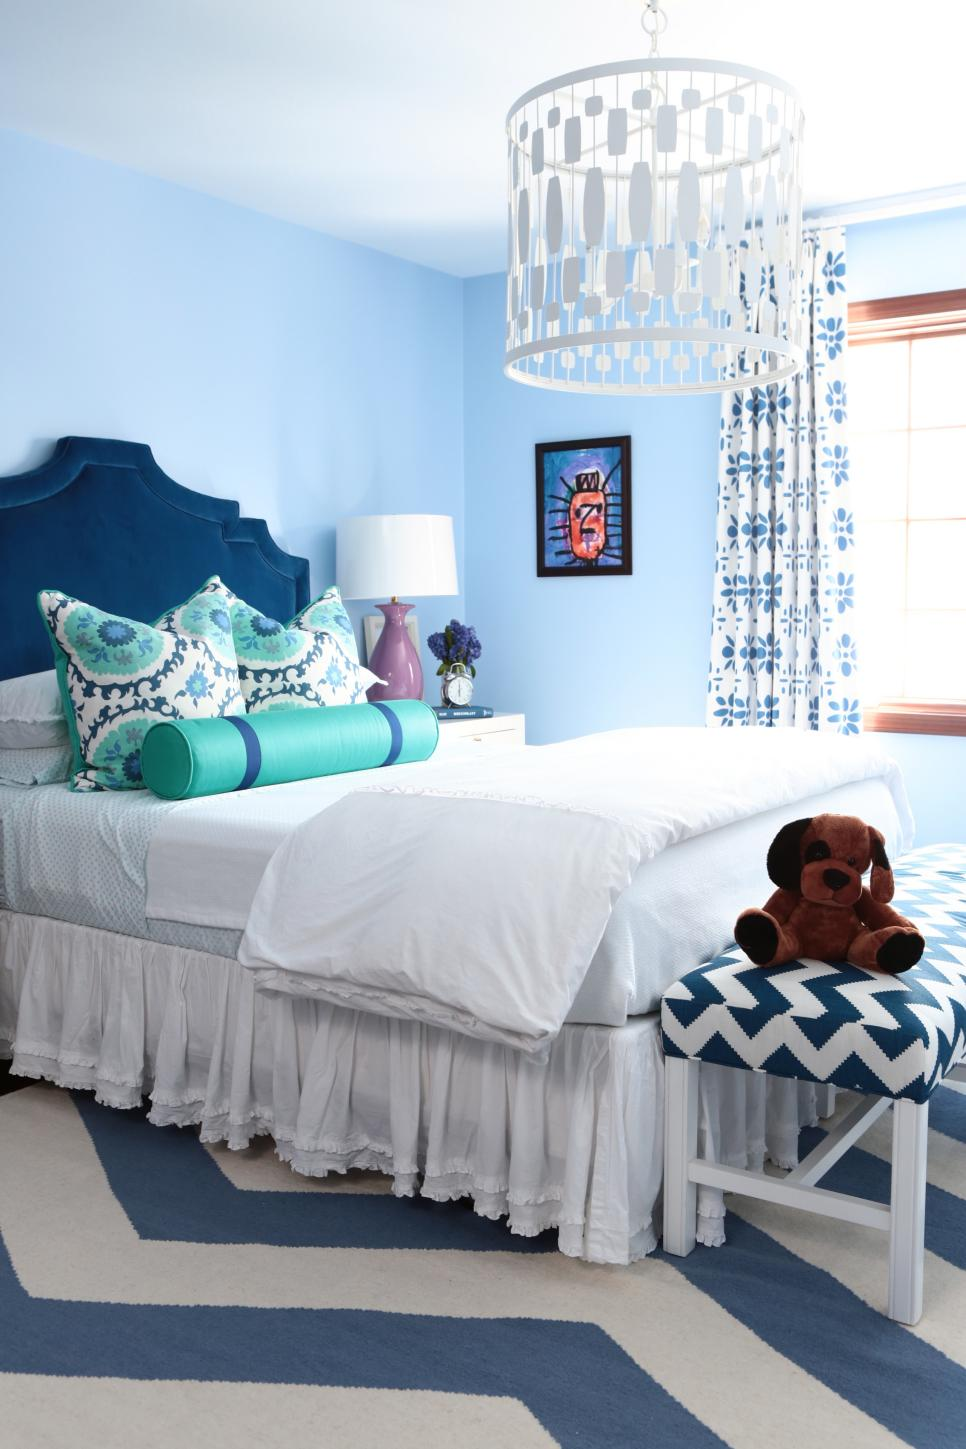 Interior Blue Bed Rooms blue bedroom design ideas decor hgtv cool colorful girls room 4 photos